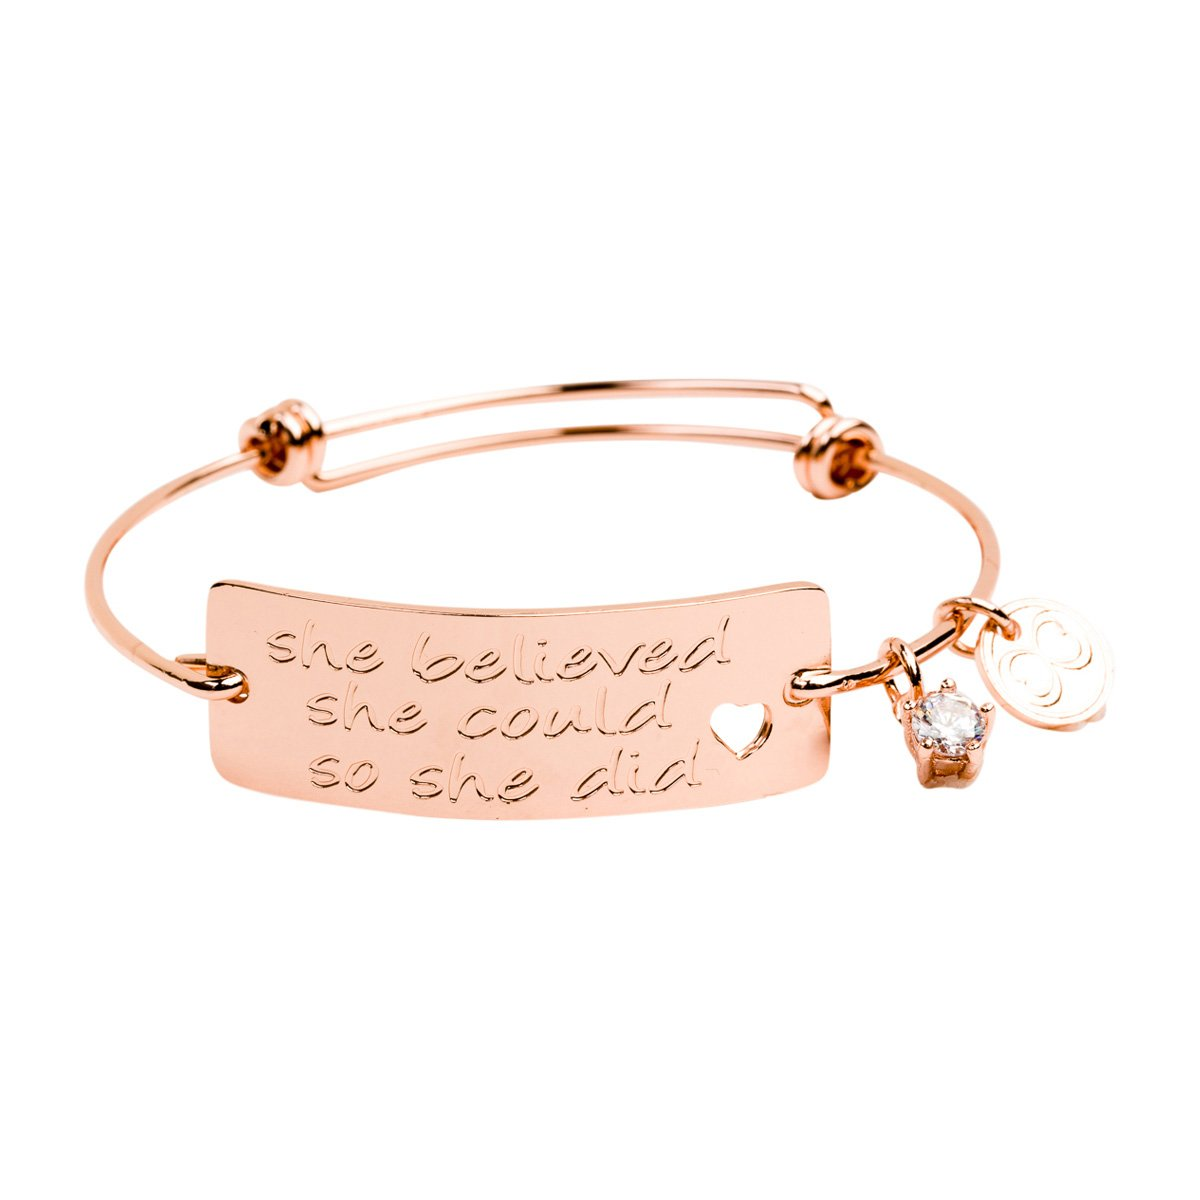 Expandable Charm Bracelet She Believed She Could So She Did, Inspirational Bangle, for Her